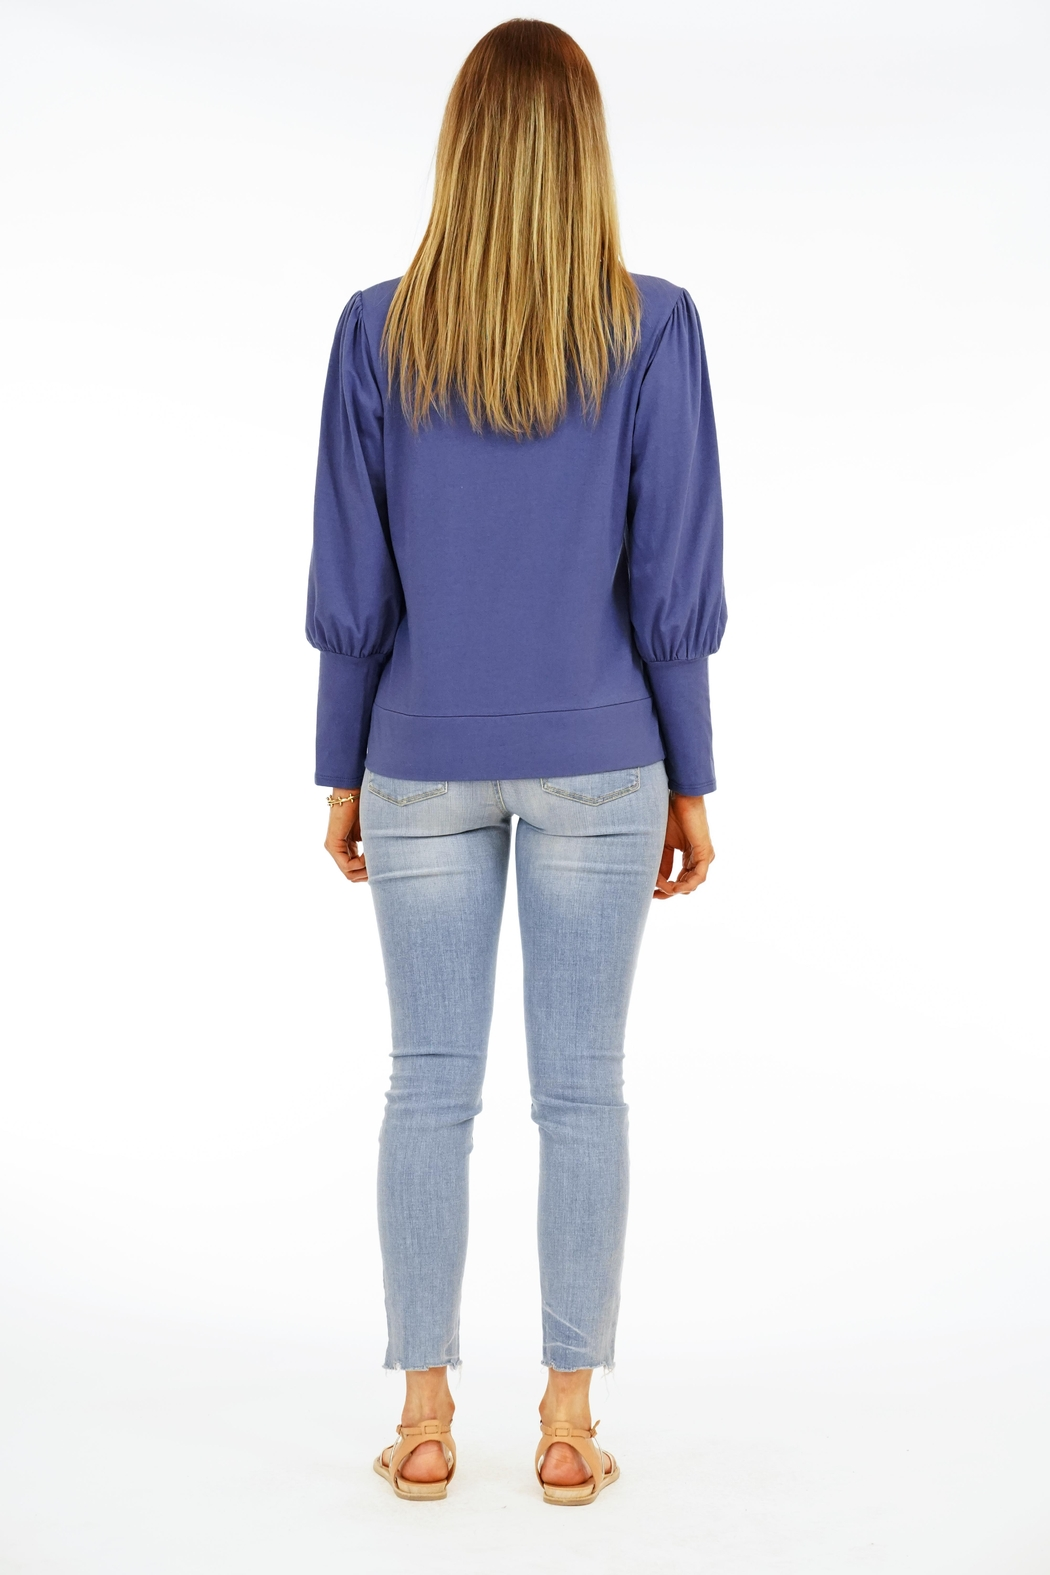 Veronica M Puff Sleeve Sweatshirt - Side Cropped Image